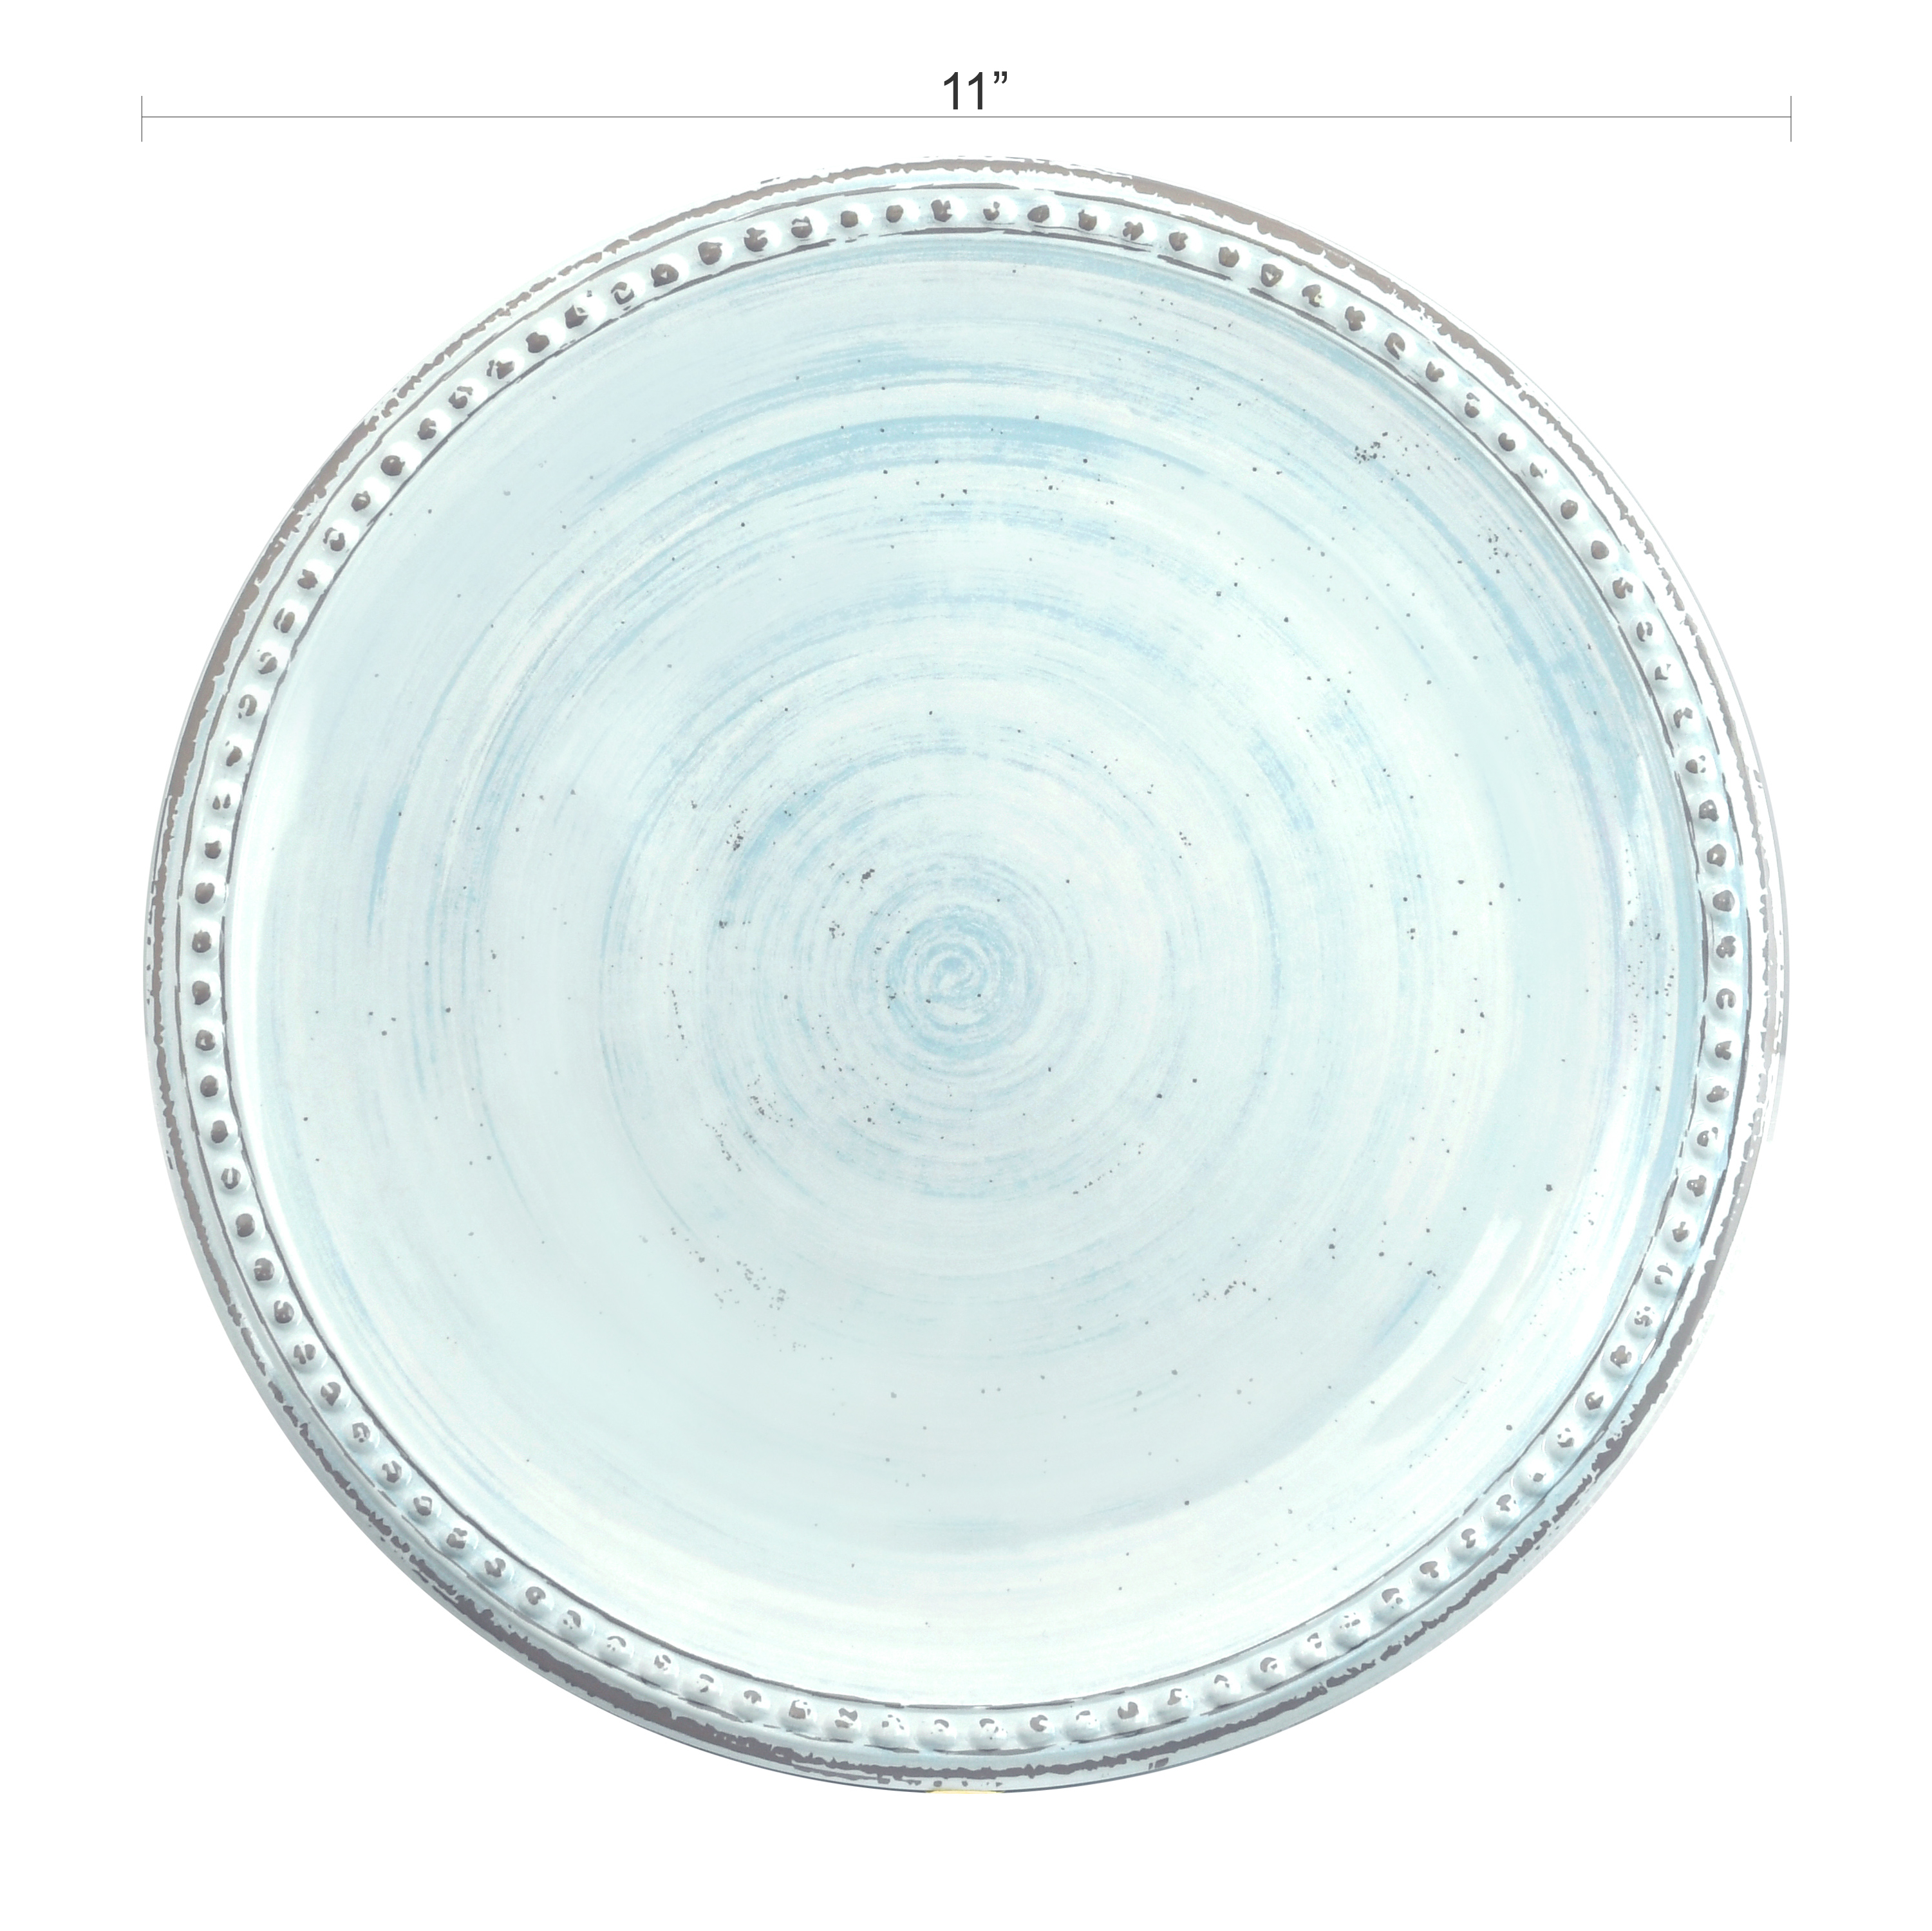 French Country Plate & Bowl Sets, Blue, 12-piece set slideshow image 6